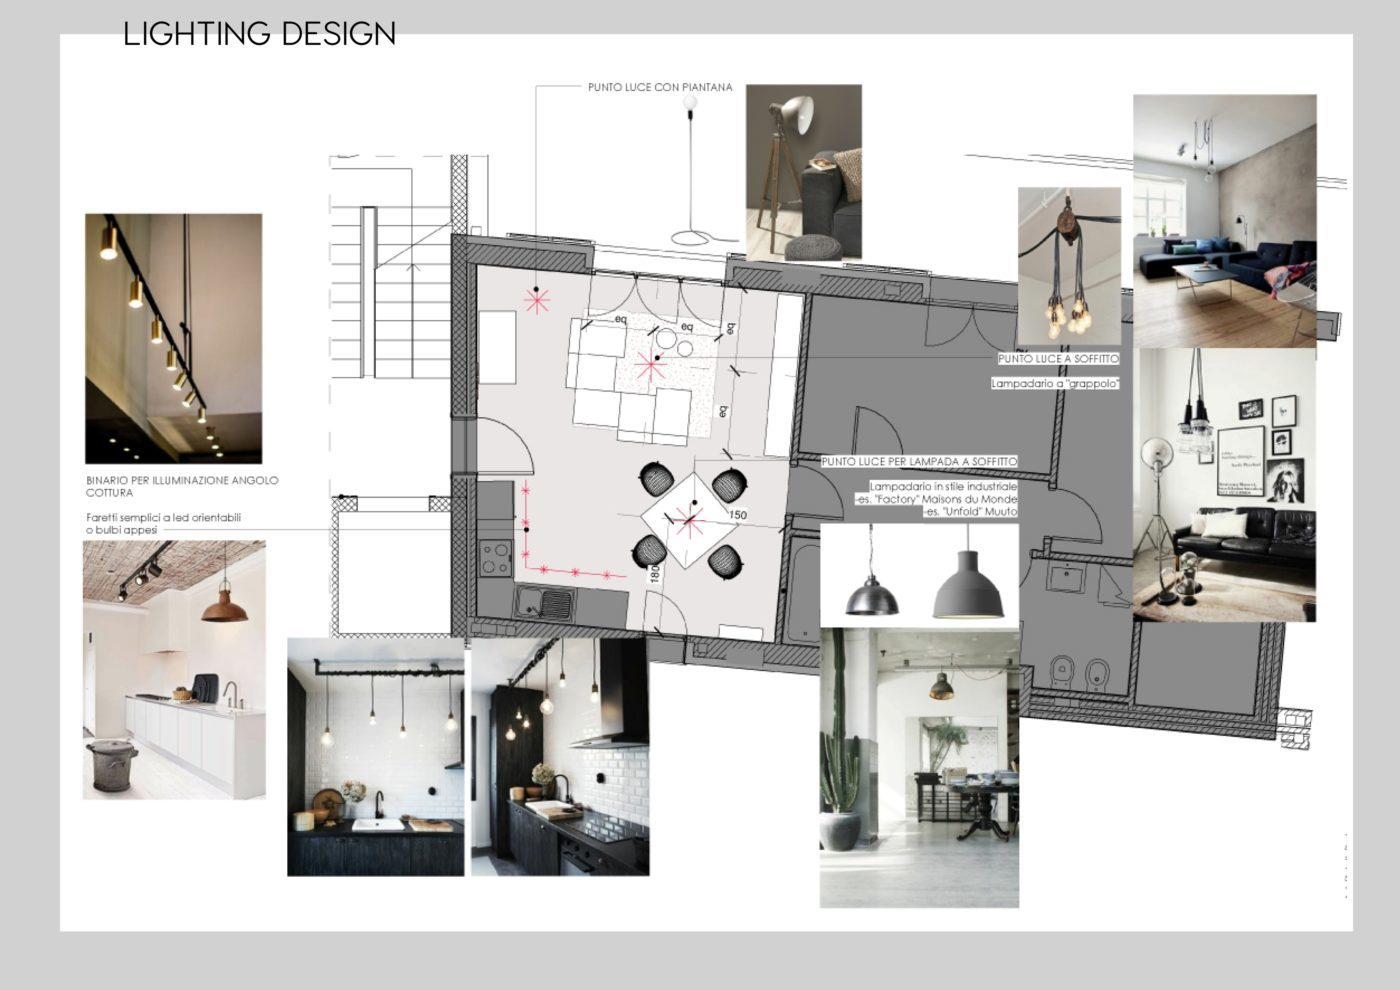 living room design, living milano, living e design, living moodboard, er interior design, progettazione interni online, lighting plan